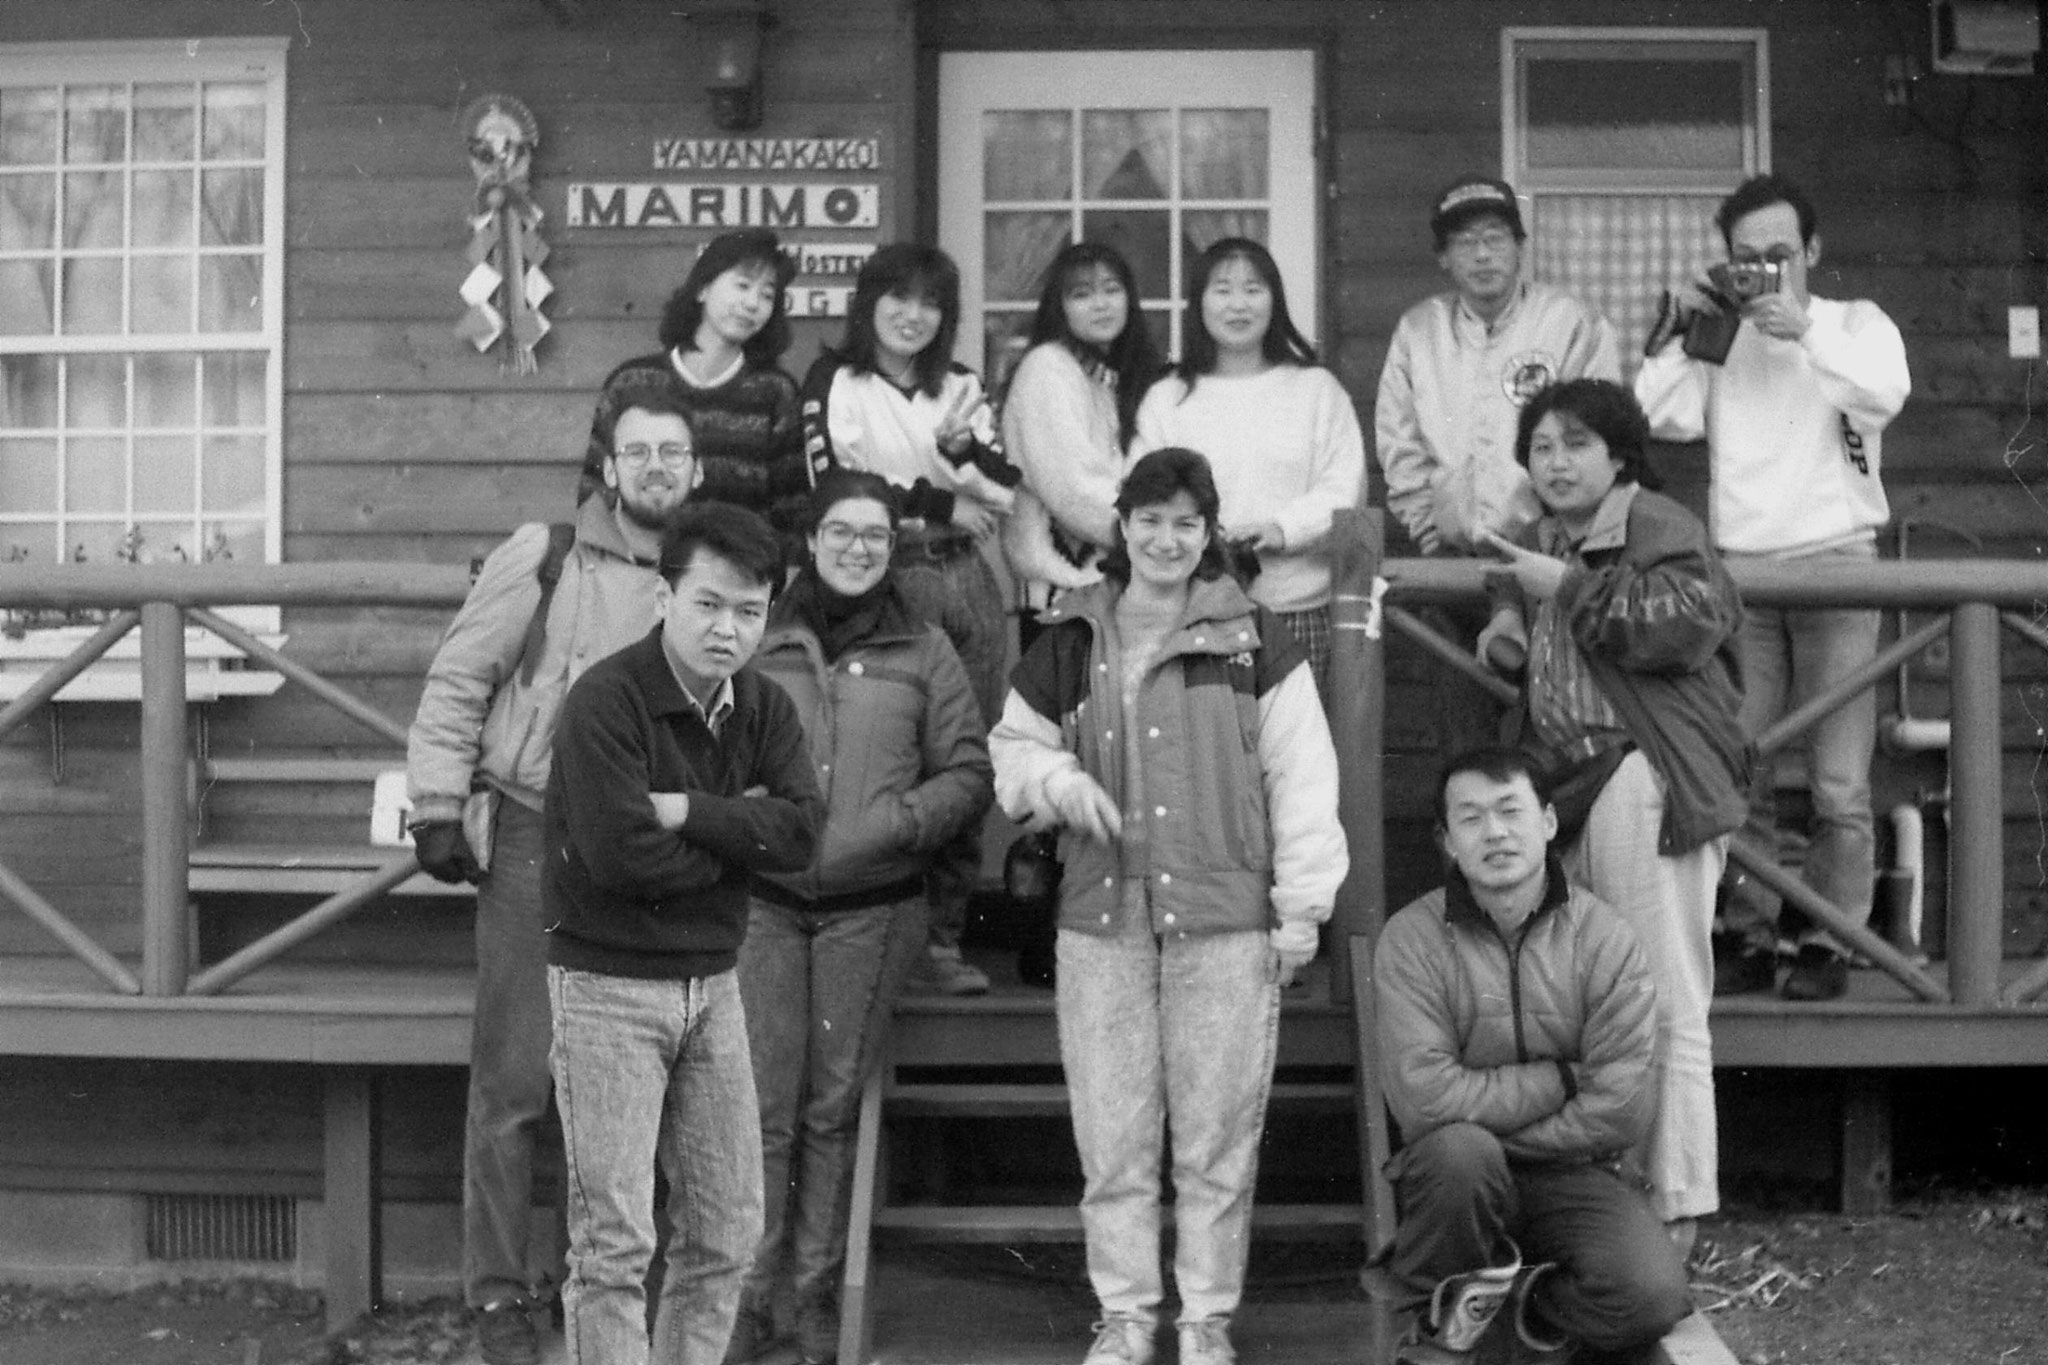 31/12/1988: 6: group in front of Youth Hostel